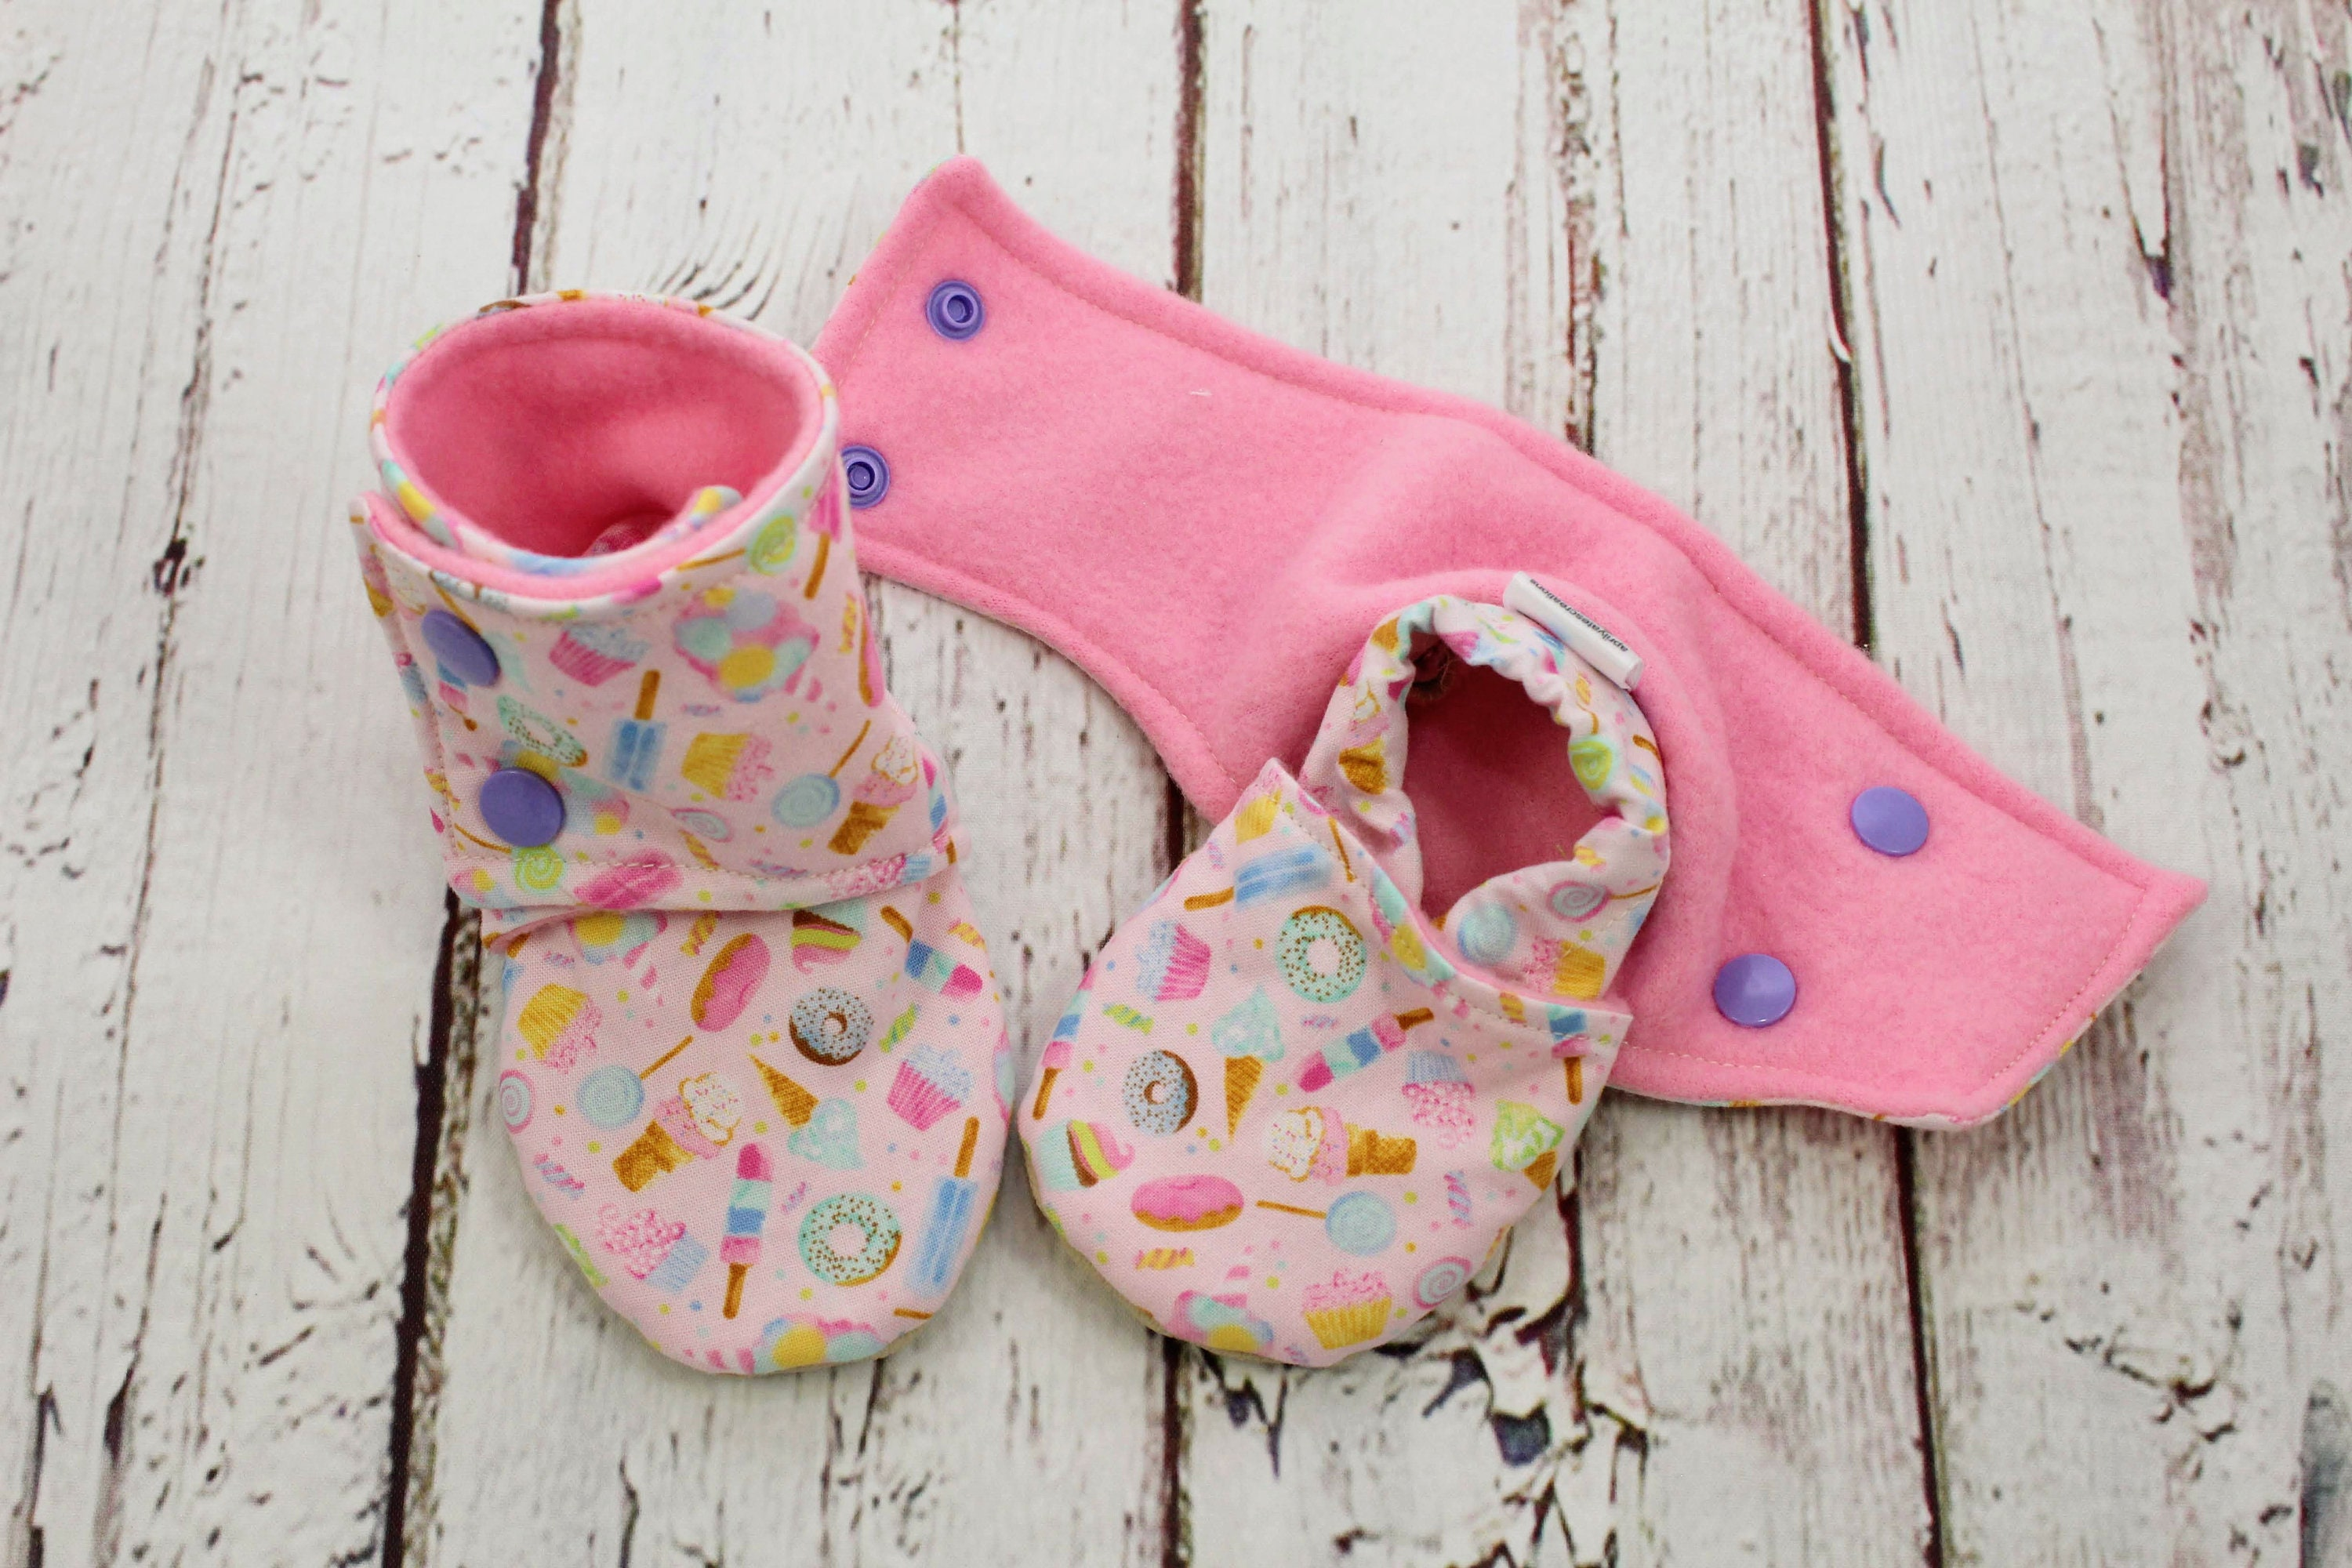 db359210b834b candy baby booties - non slip baby shoes - baby boots - stay on booties -  9-12 month baby booties - girl baby booties - baby shower gift